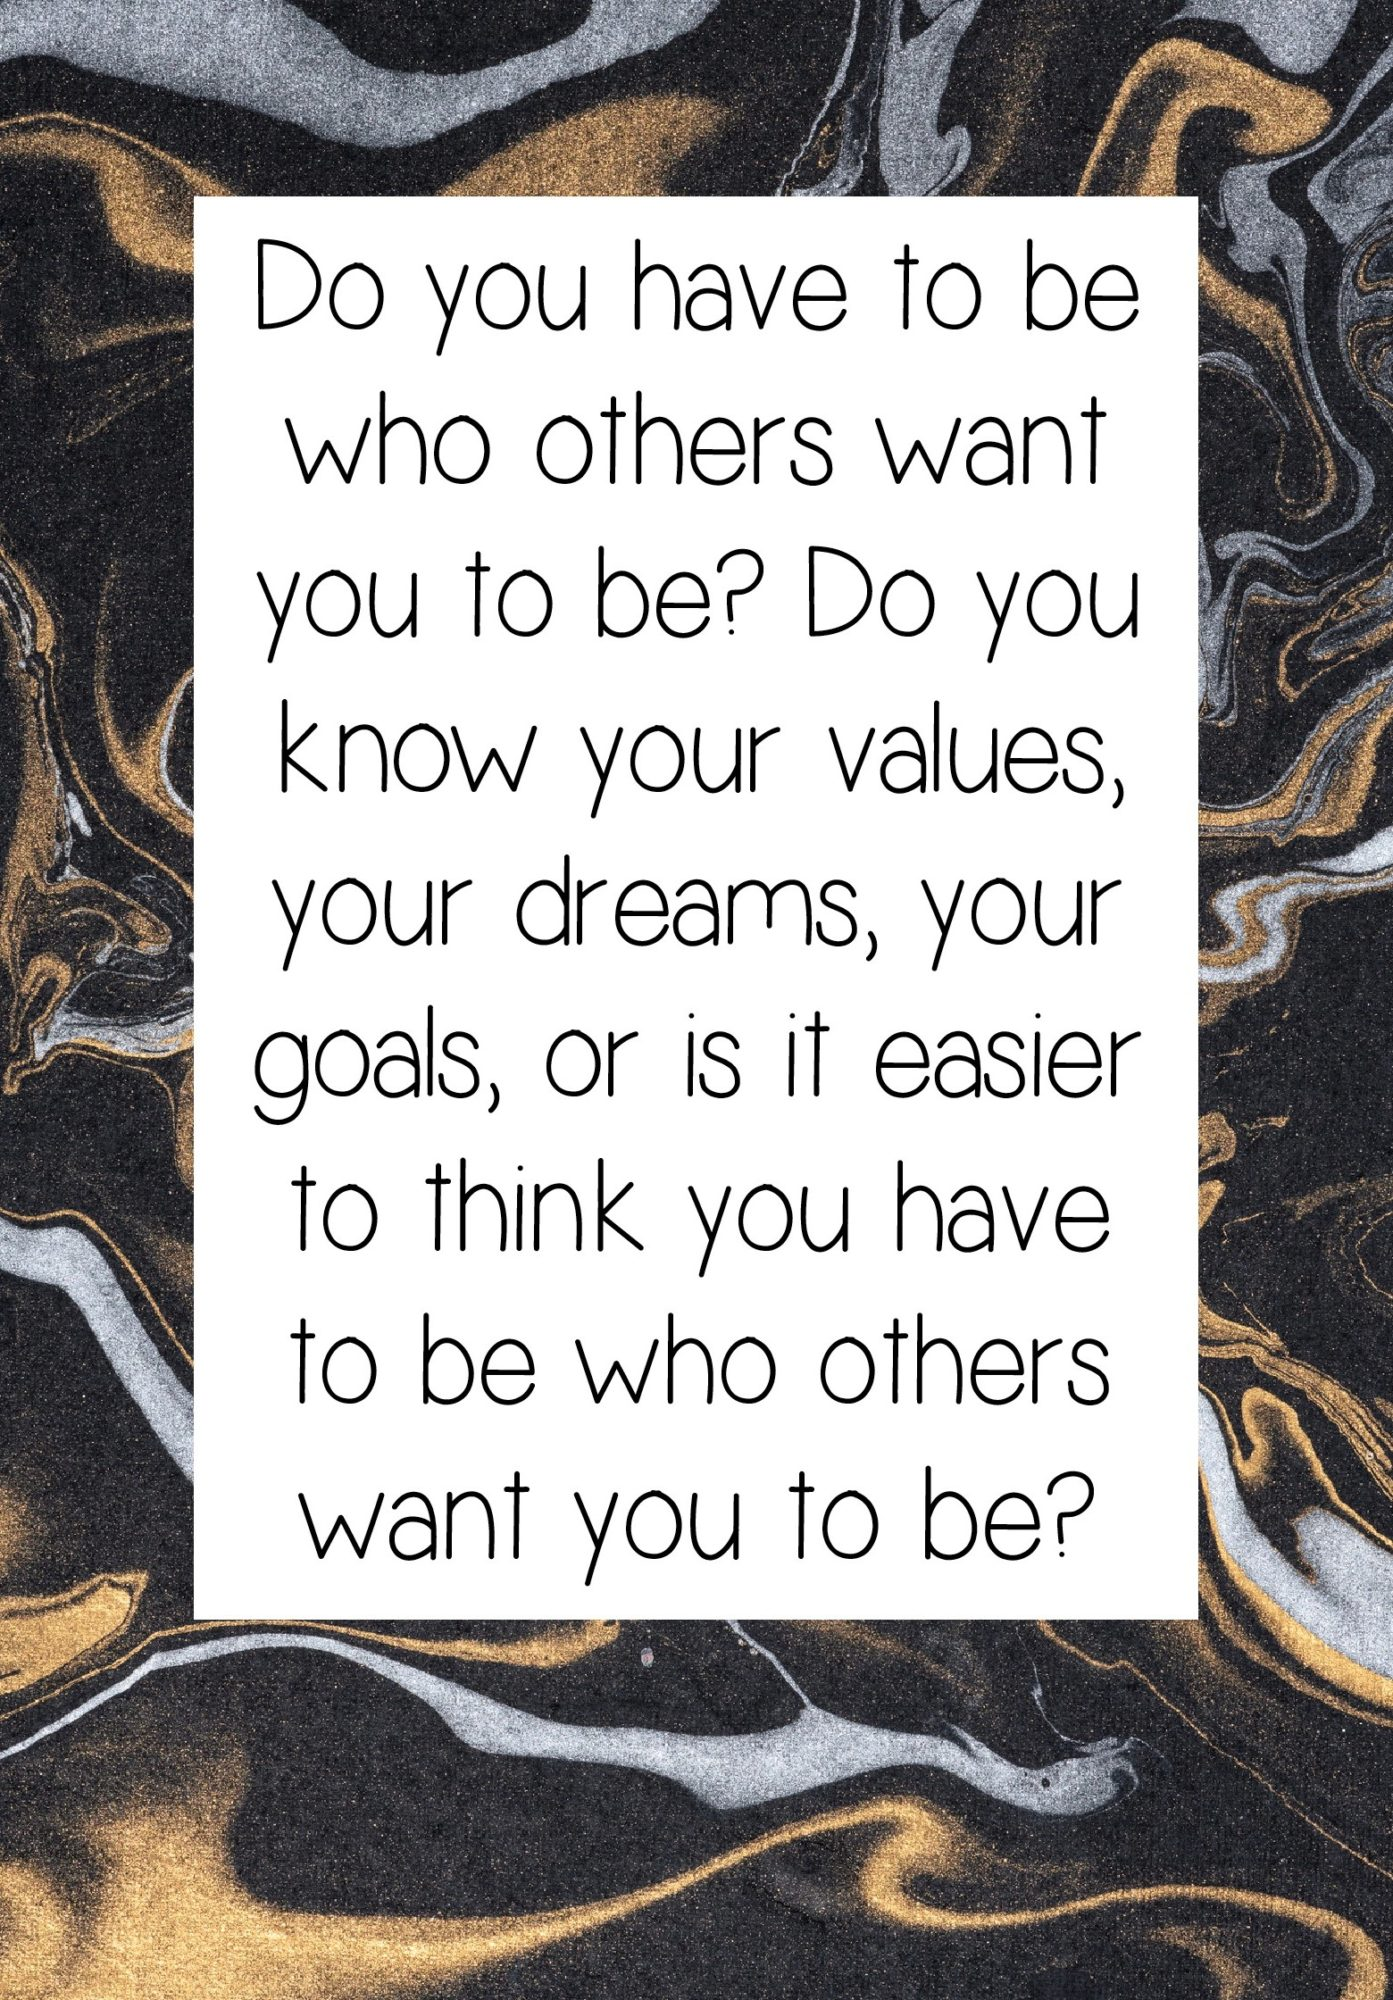 Do you have to be who others want you to be question